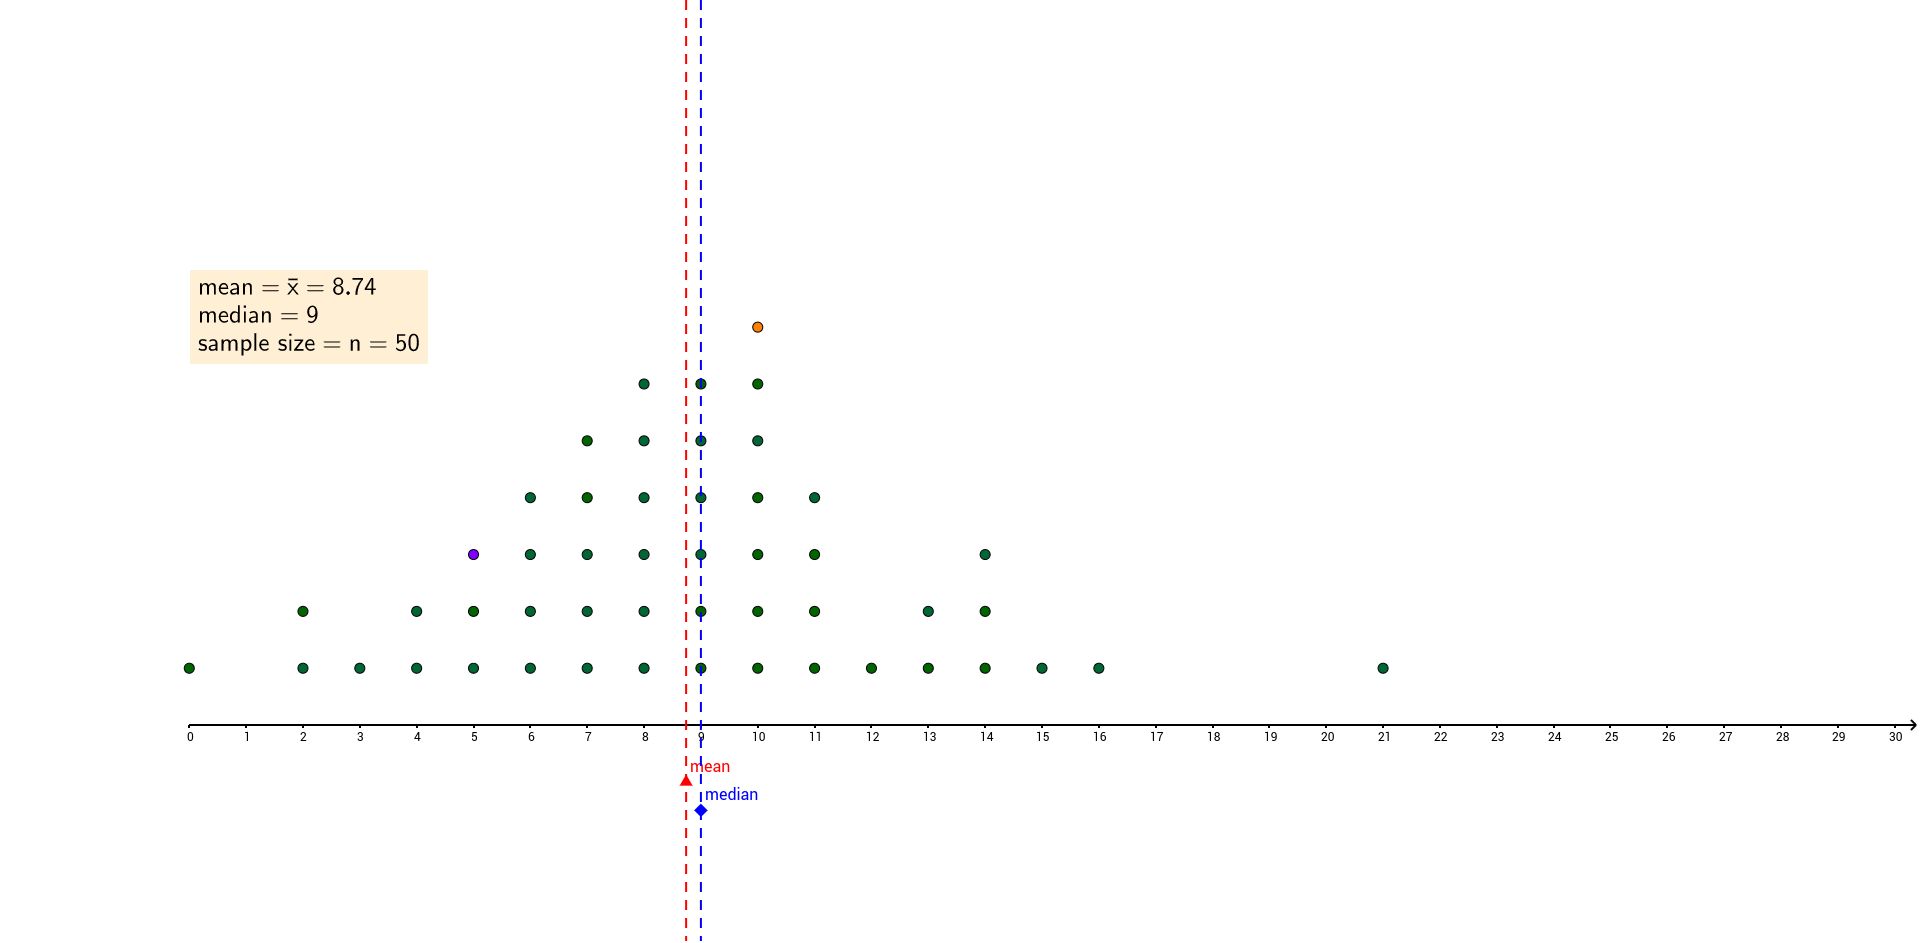 Worksheets Dot Plot Worksheet mean and median in a dotplot geogebra drag the orange dot down to 8 what happens purple up mean